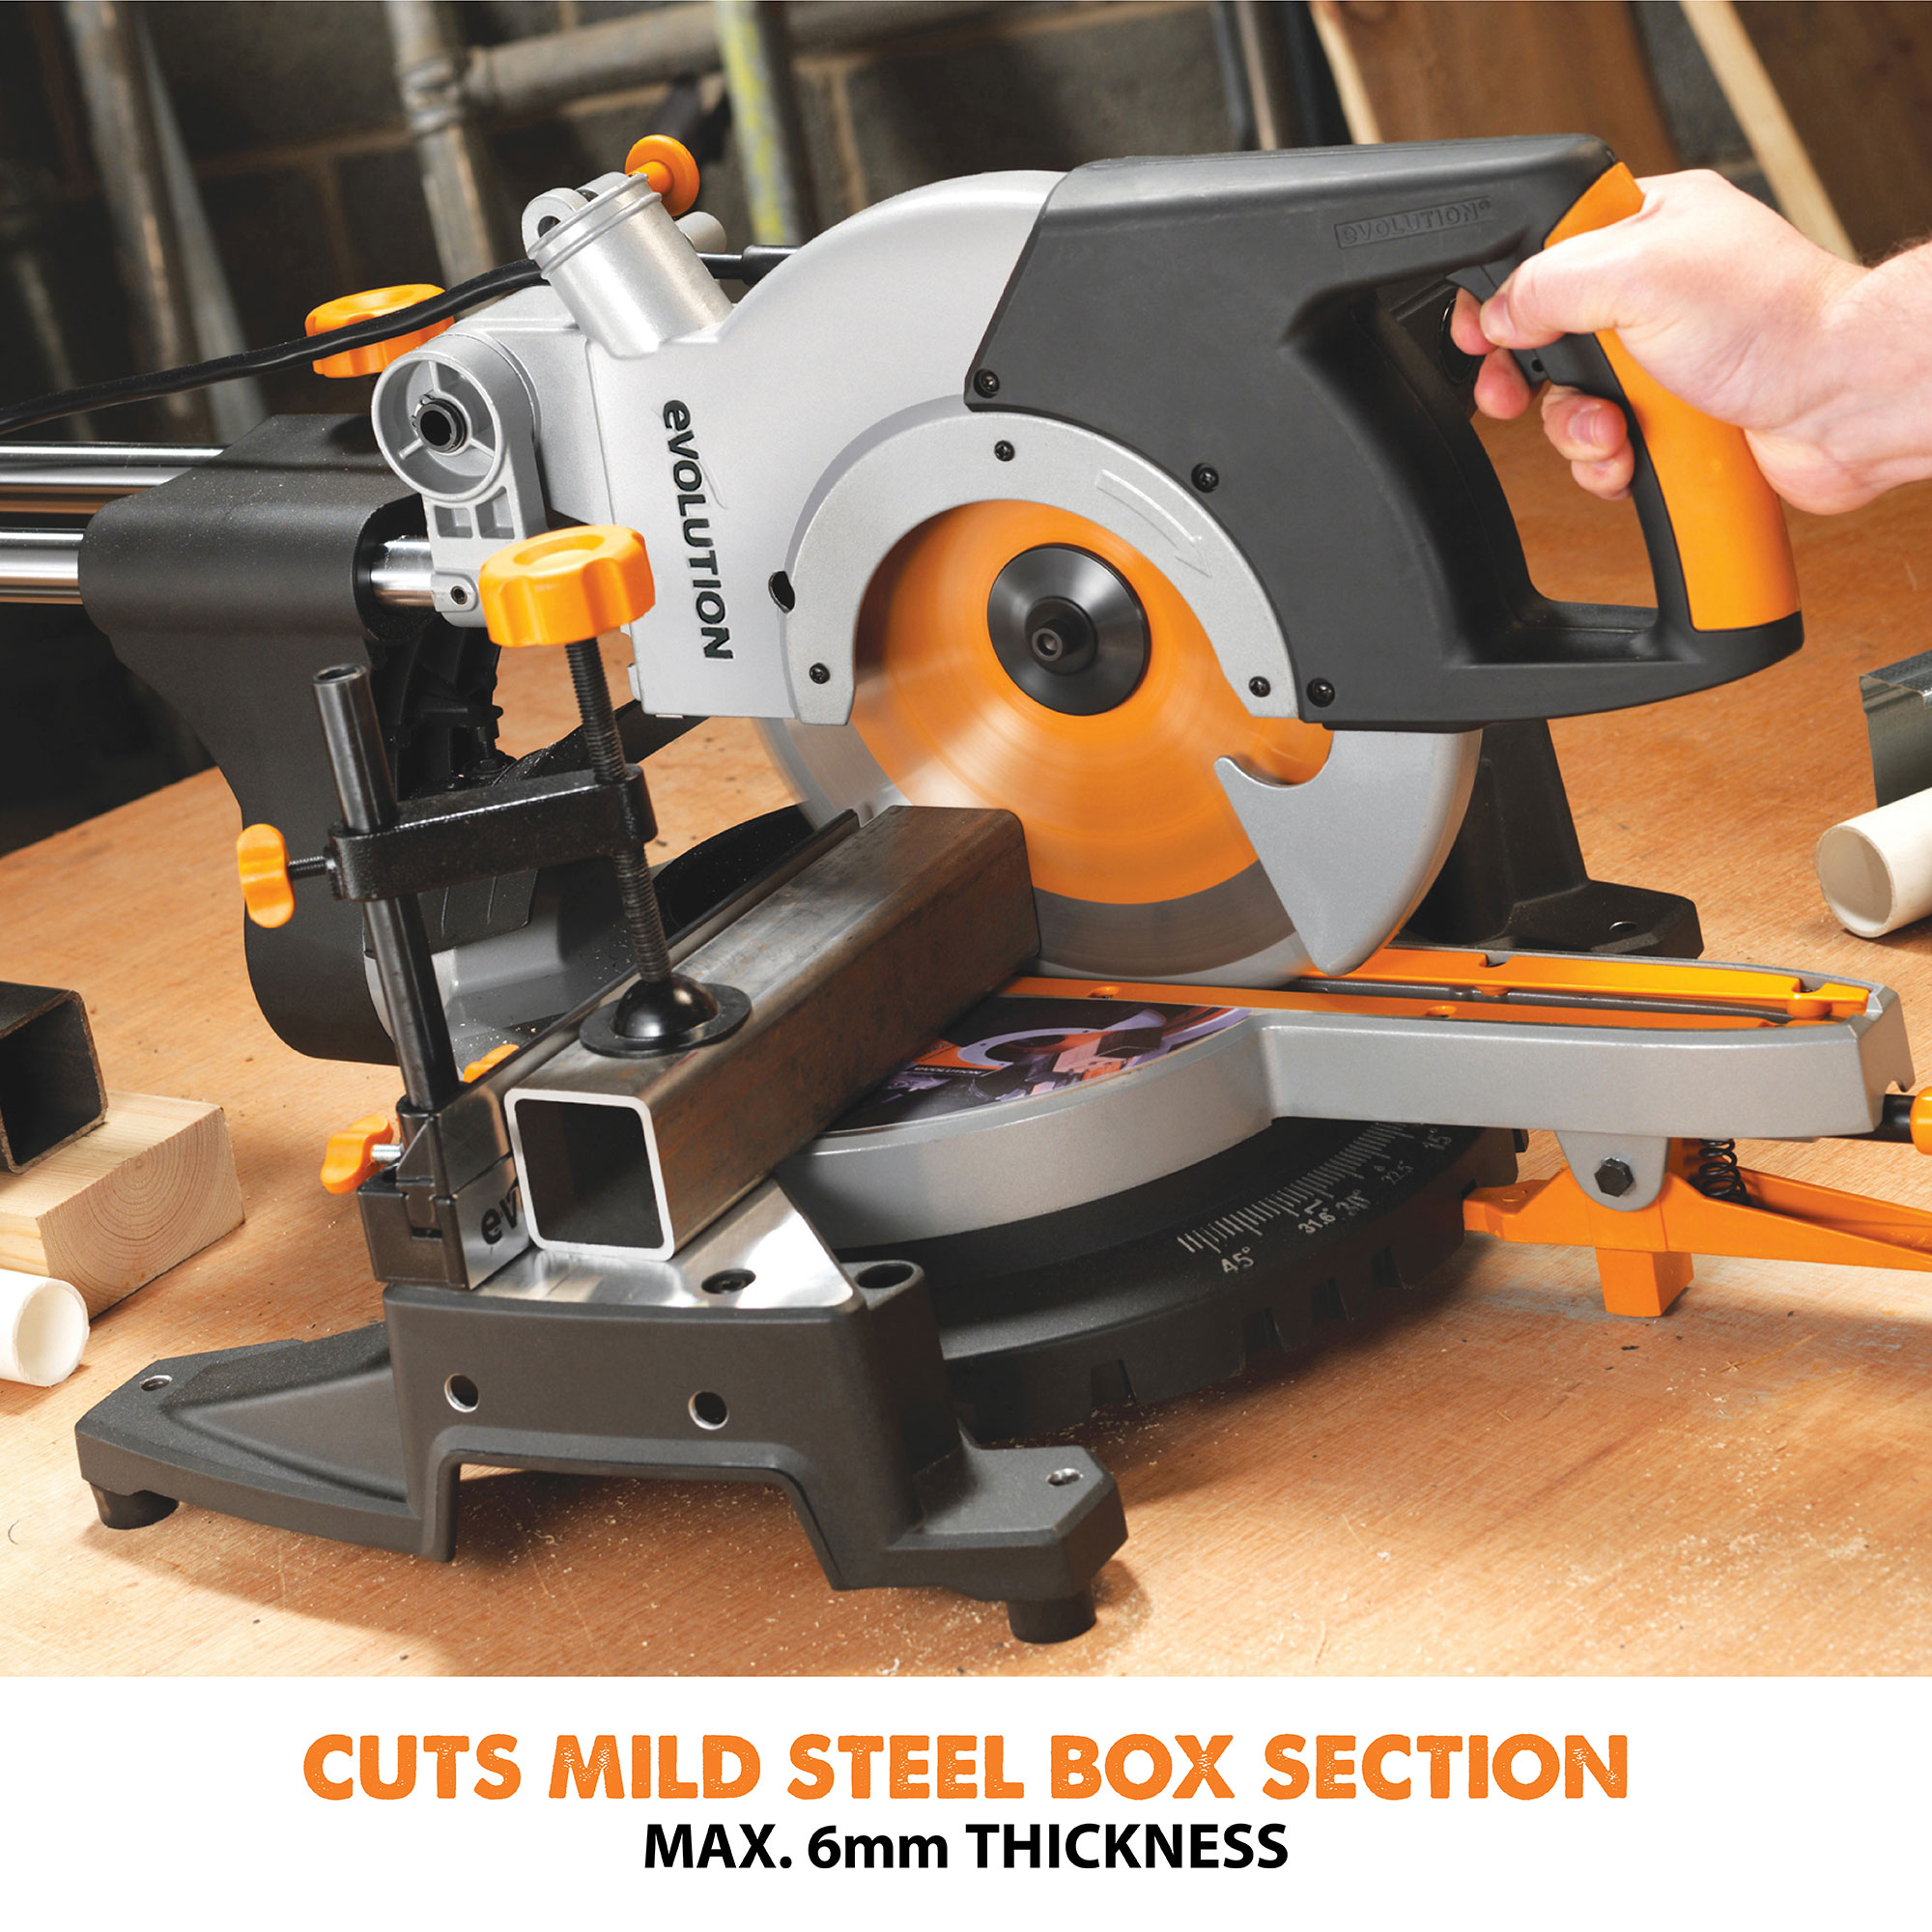 Steel Cutter South Africa: Powerful Accurate Multipurpose